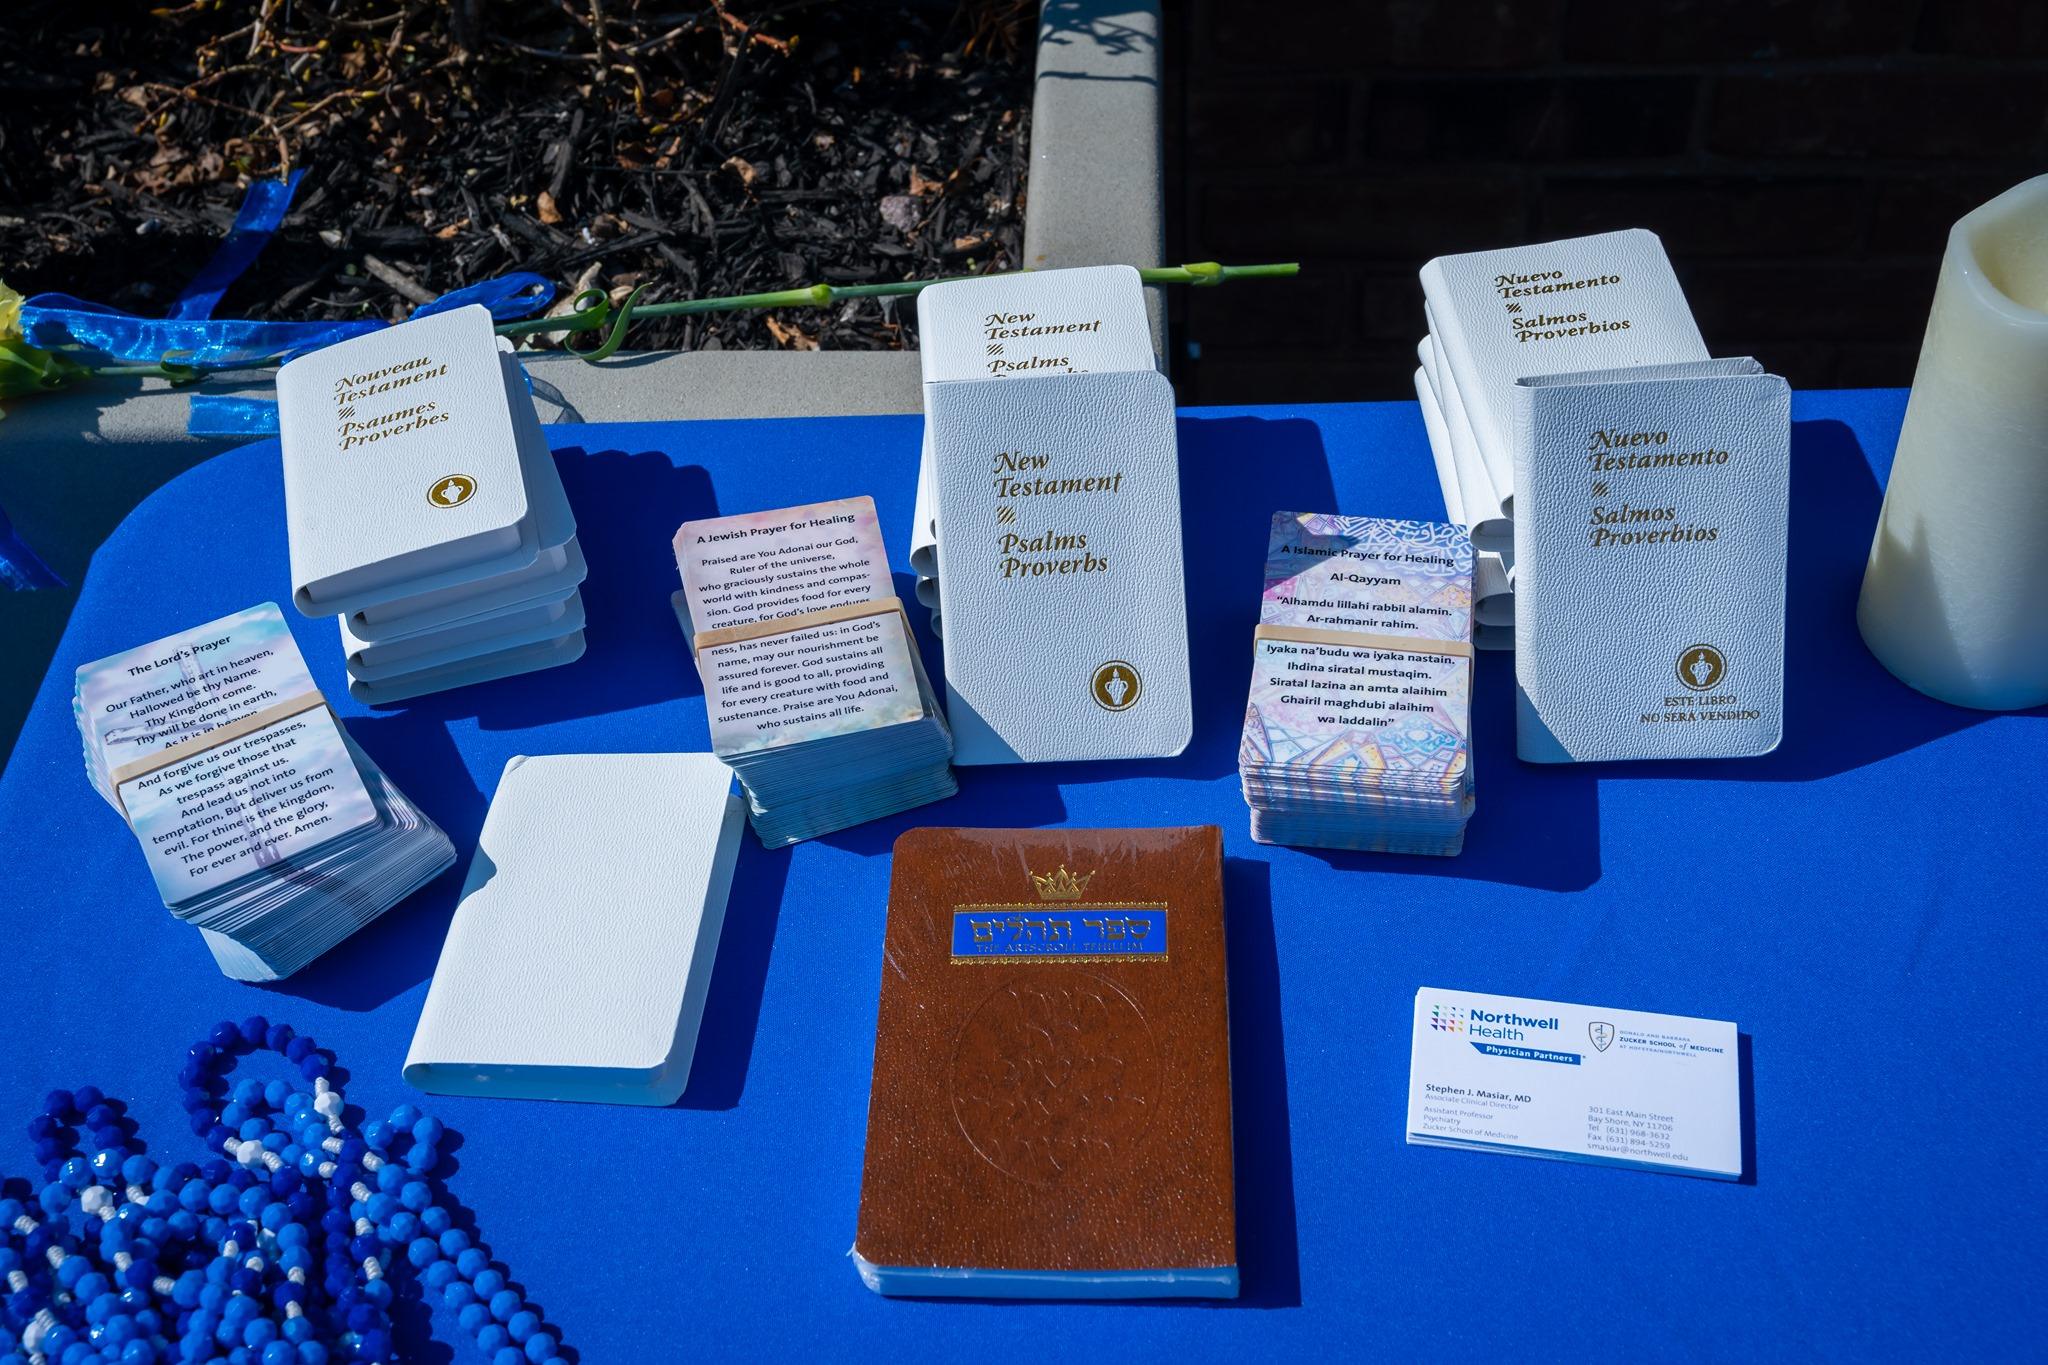 bible, books of prayer line table